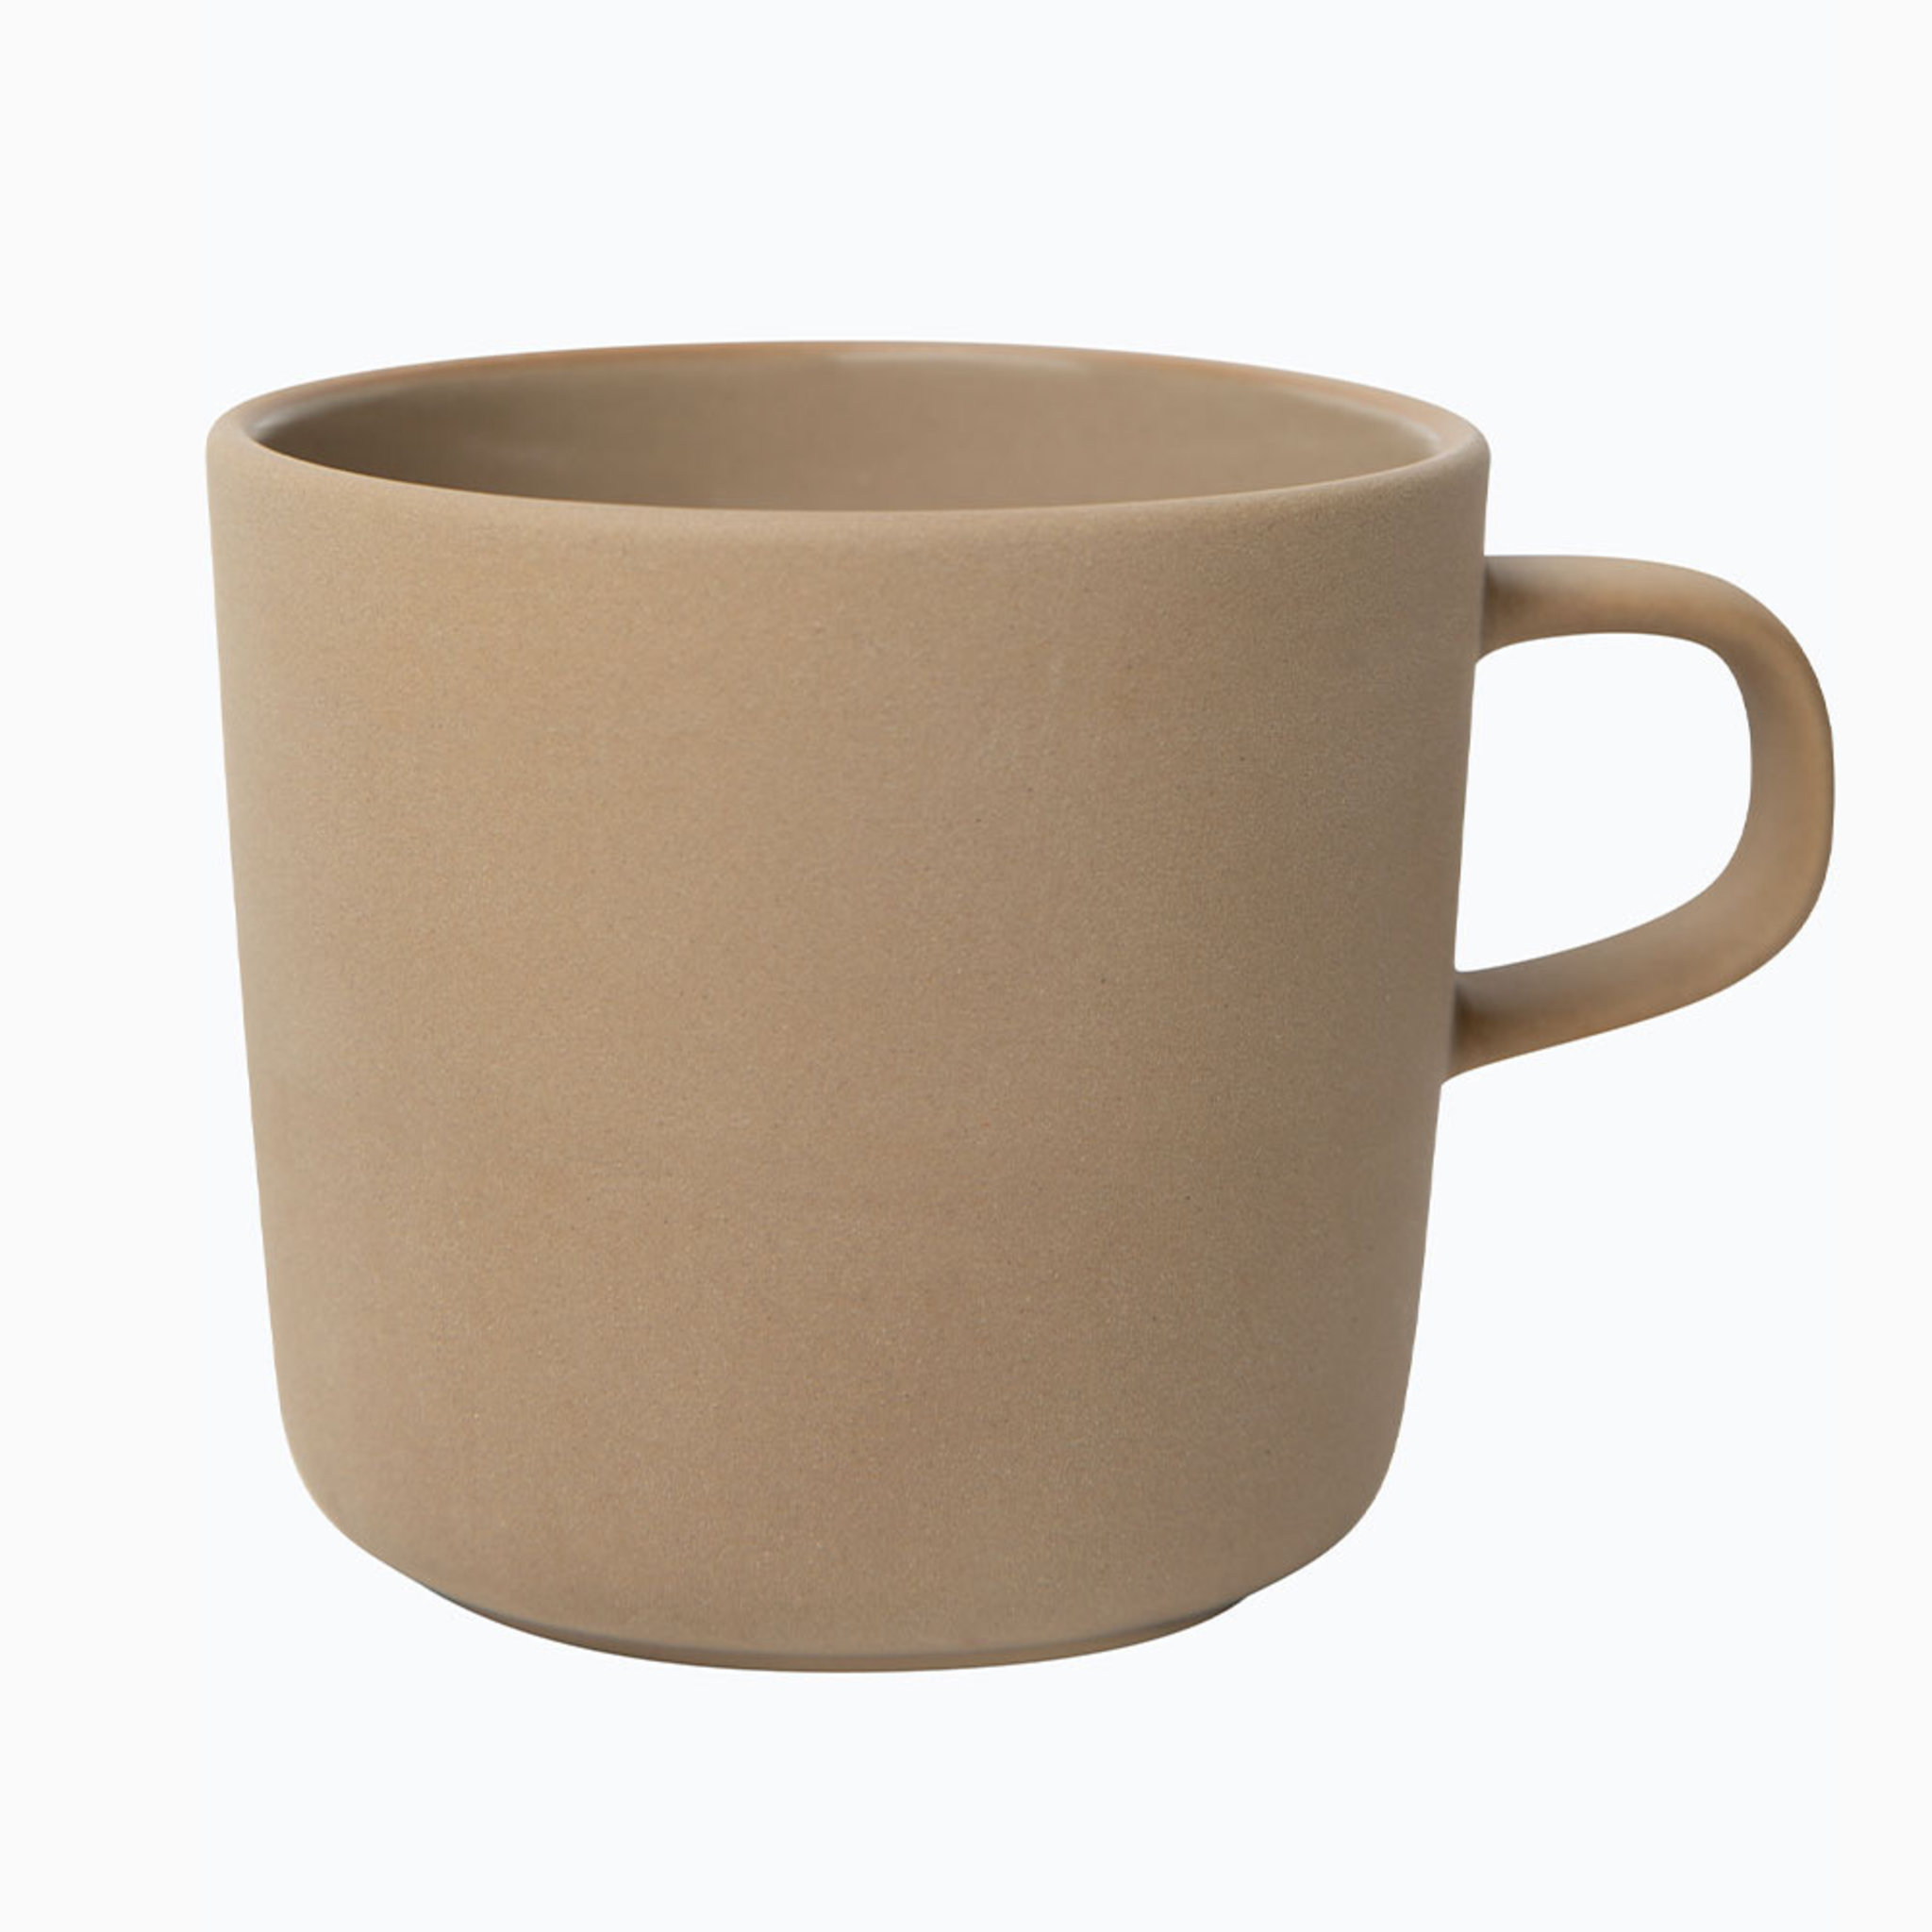 OIVA COFFEE CUP 2 DL